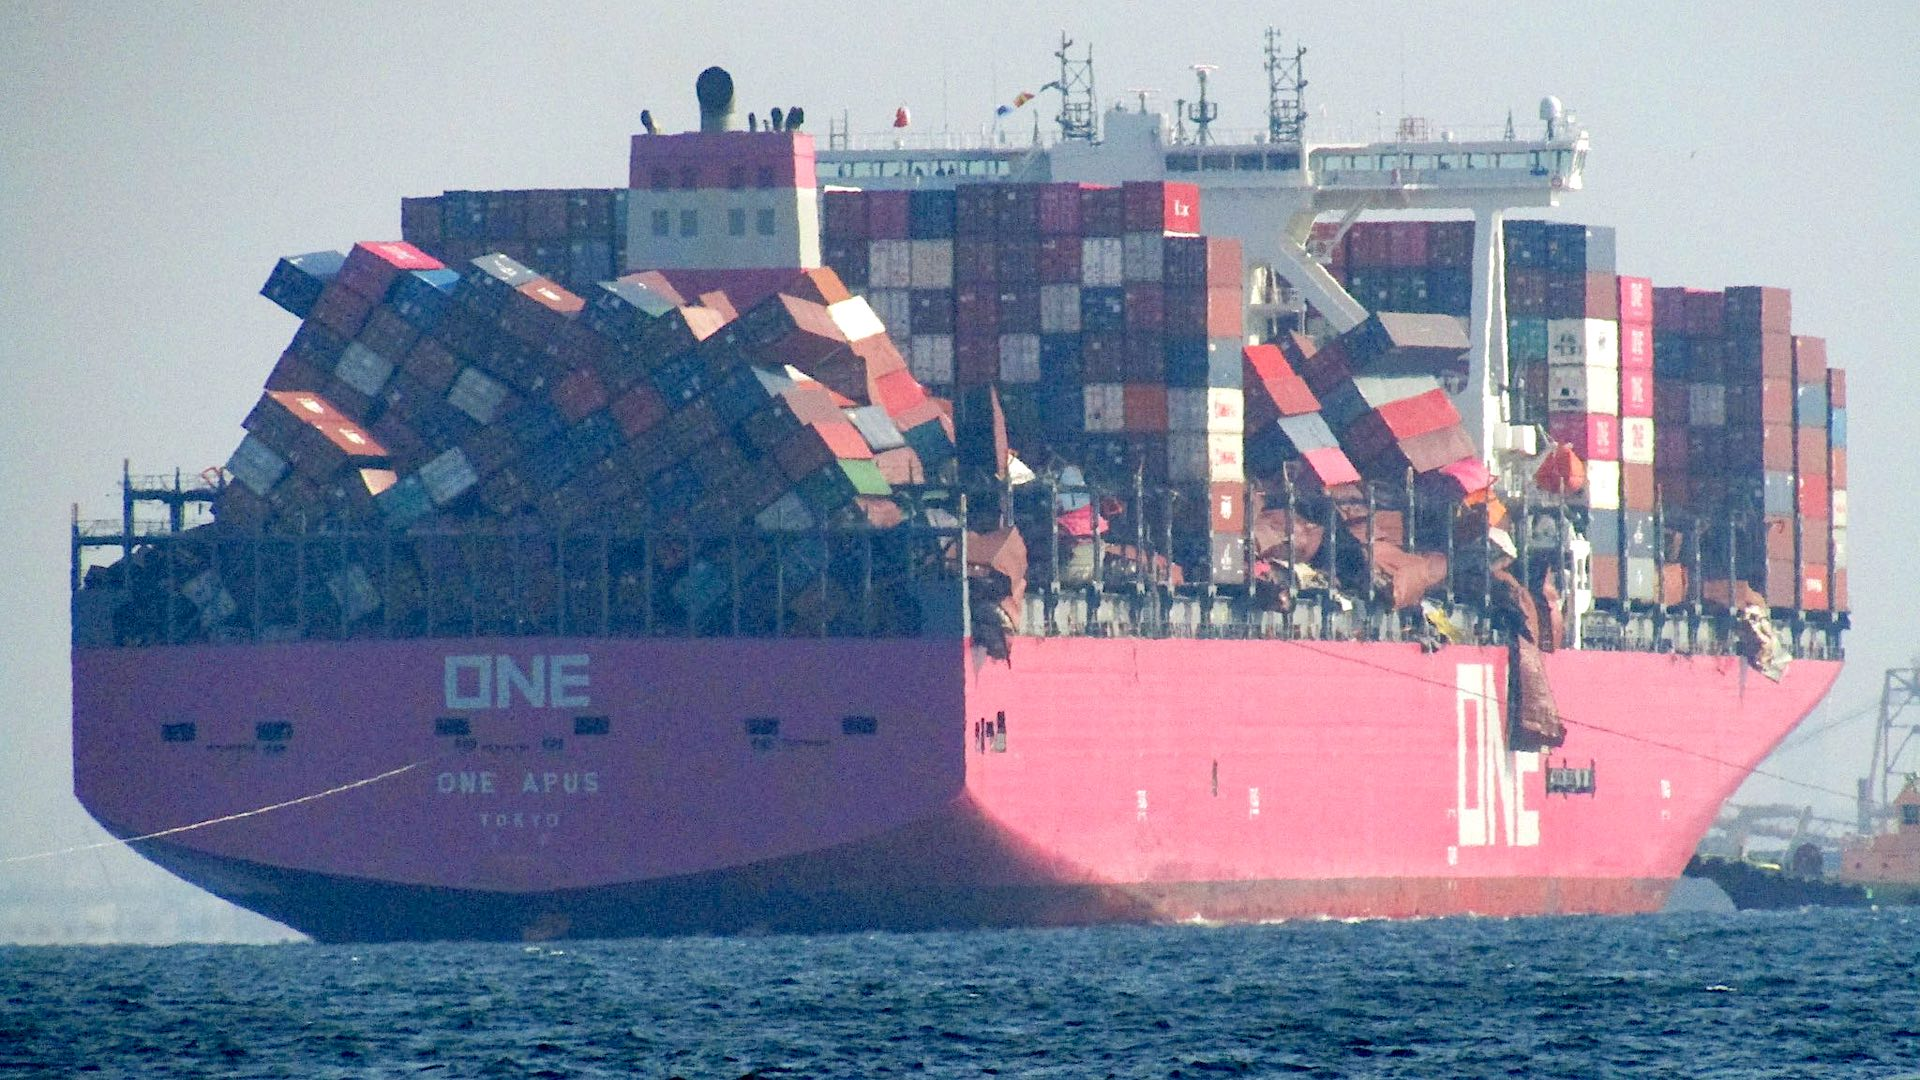 One Apus loosing containers 1